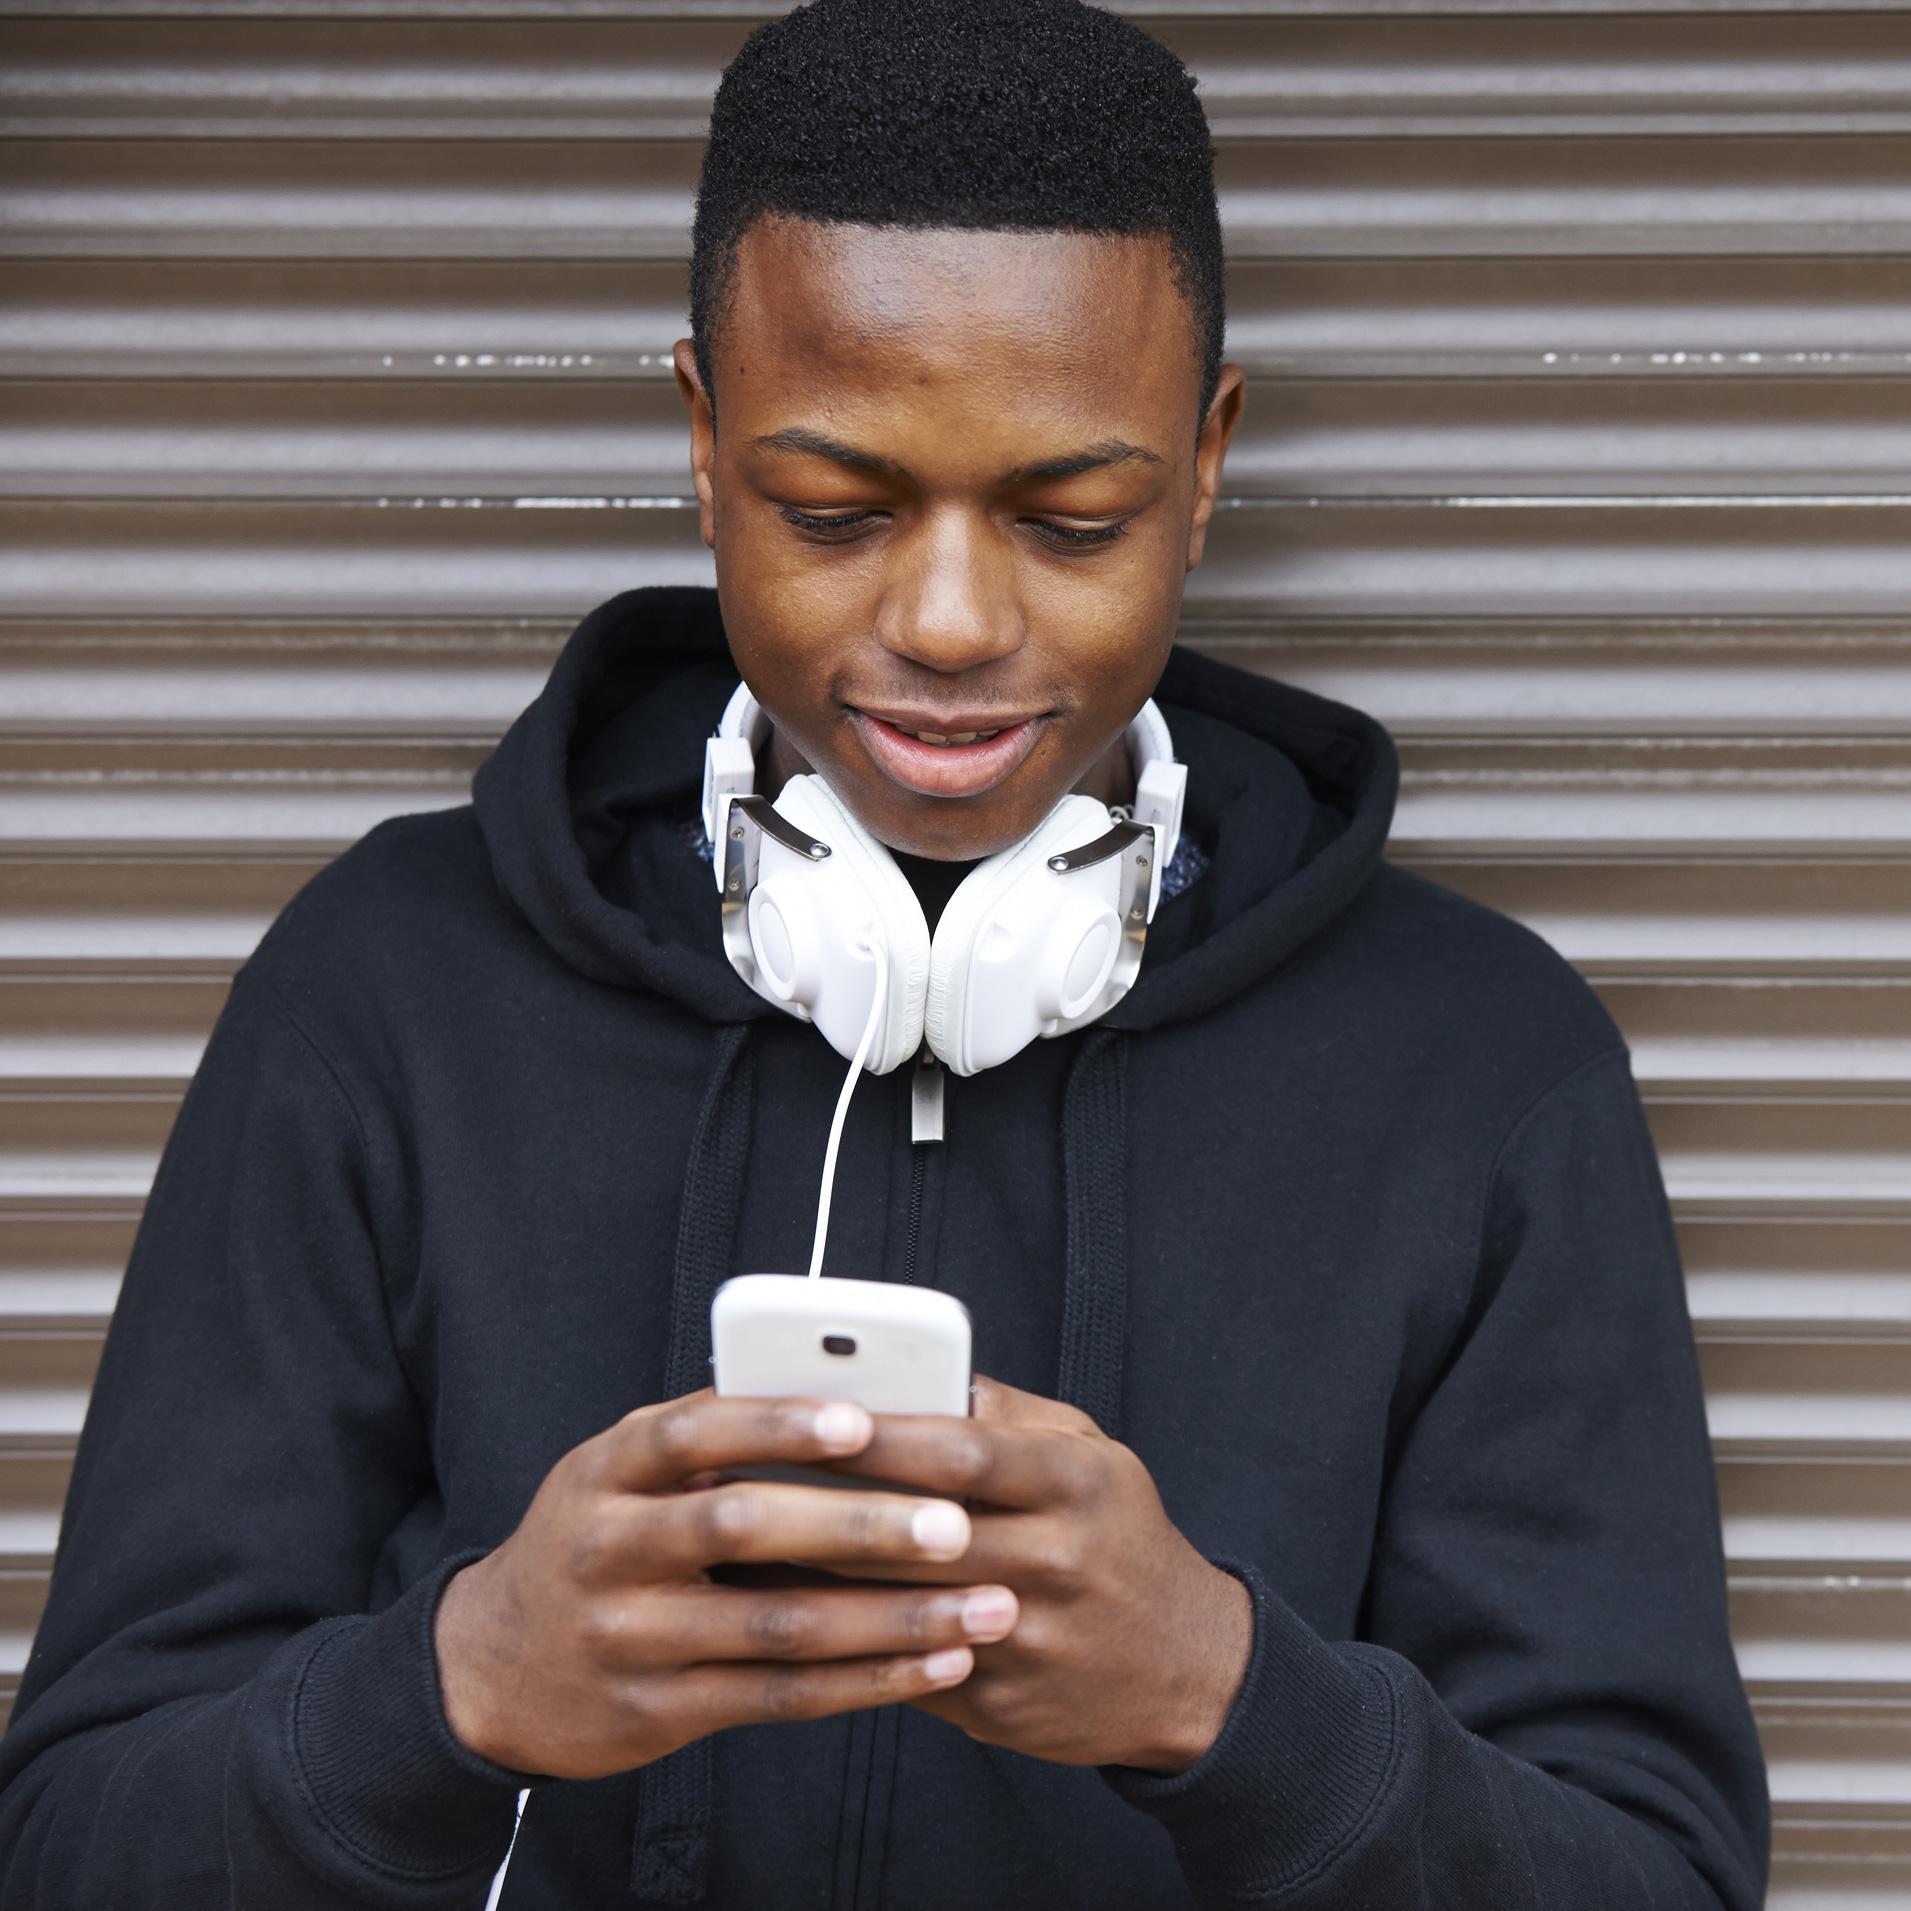 Boy with headphones around his neck checking his phone